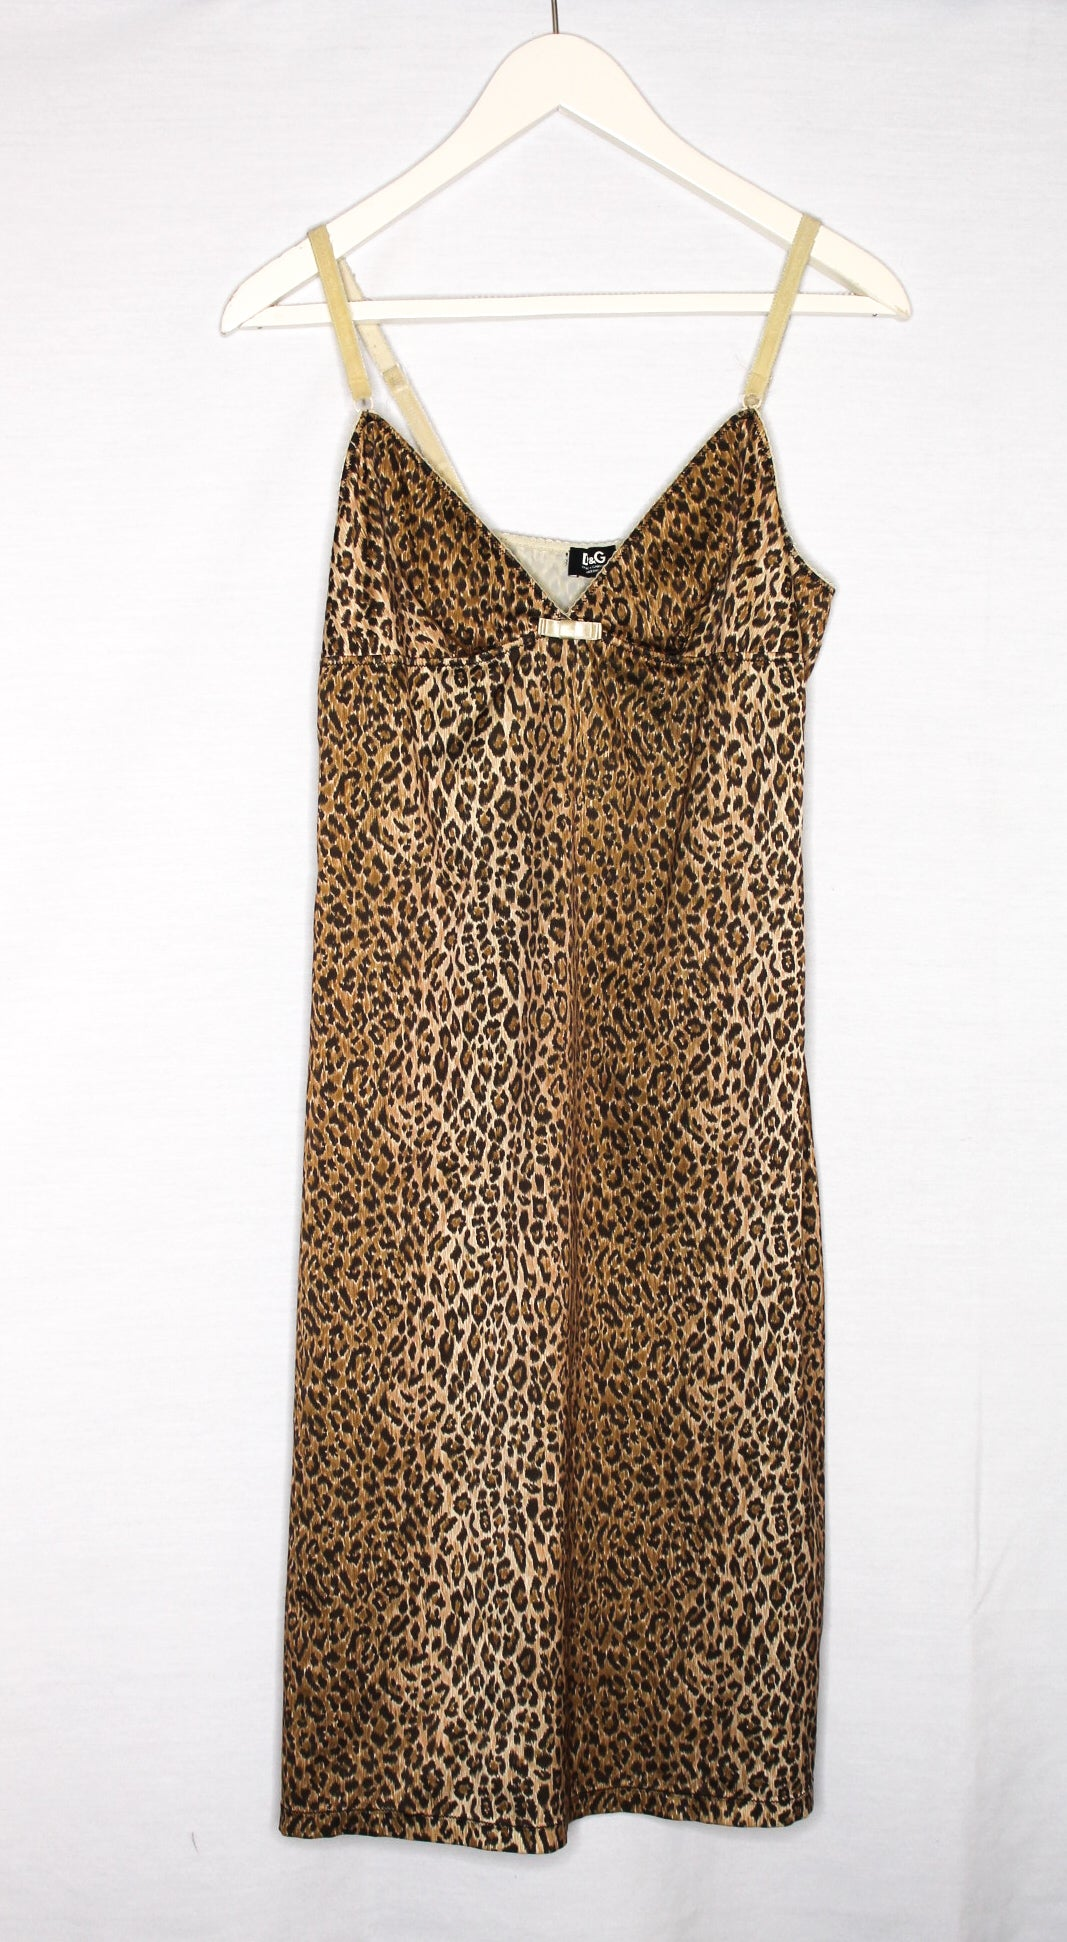 D&G Cheetah Dress/ Size M